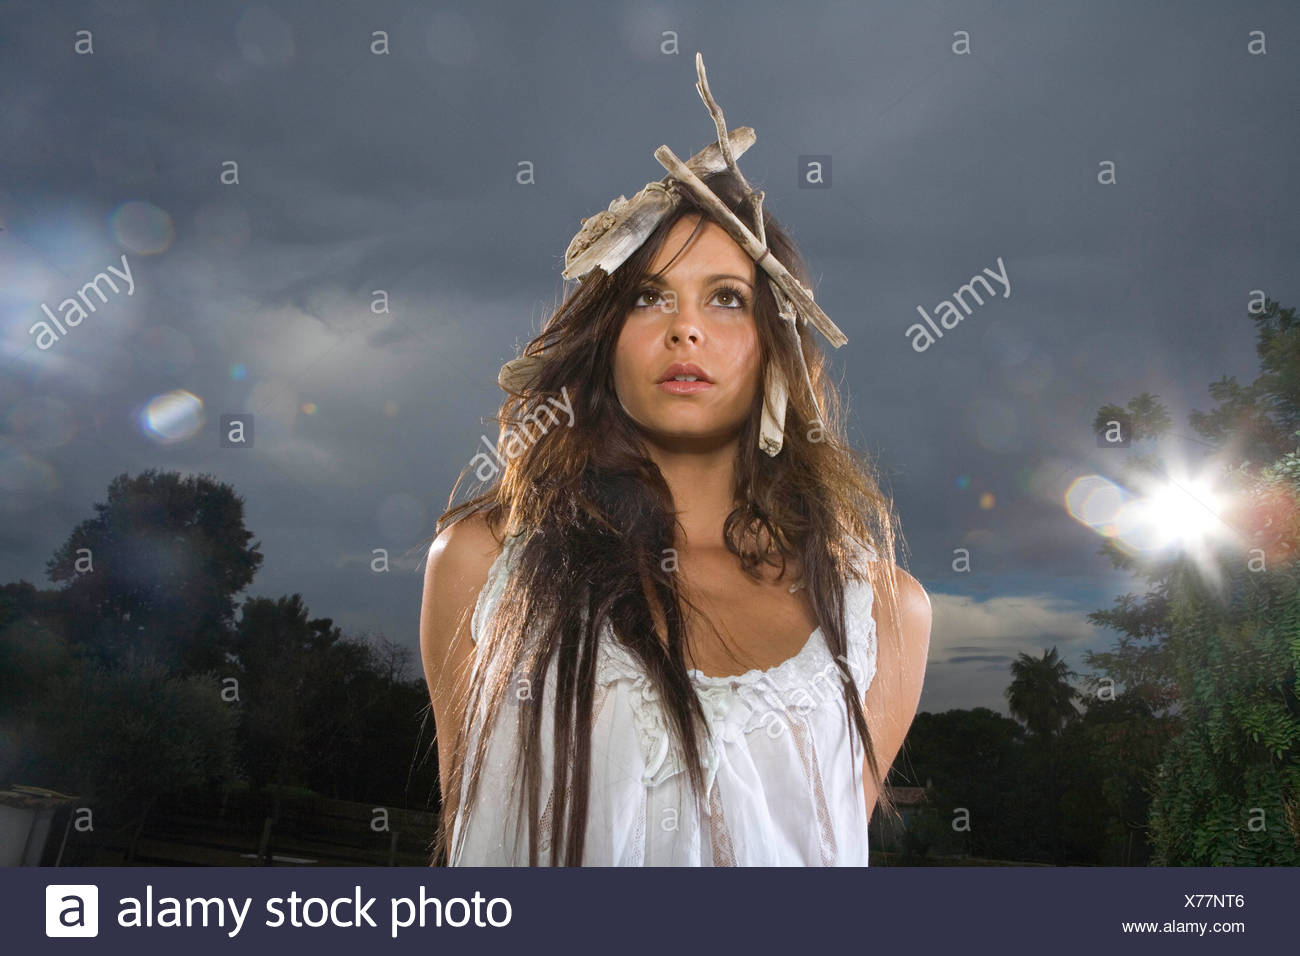 Woman with head ornament outside - Stock Image